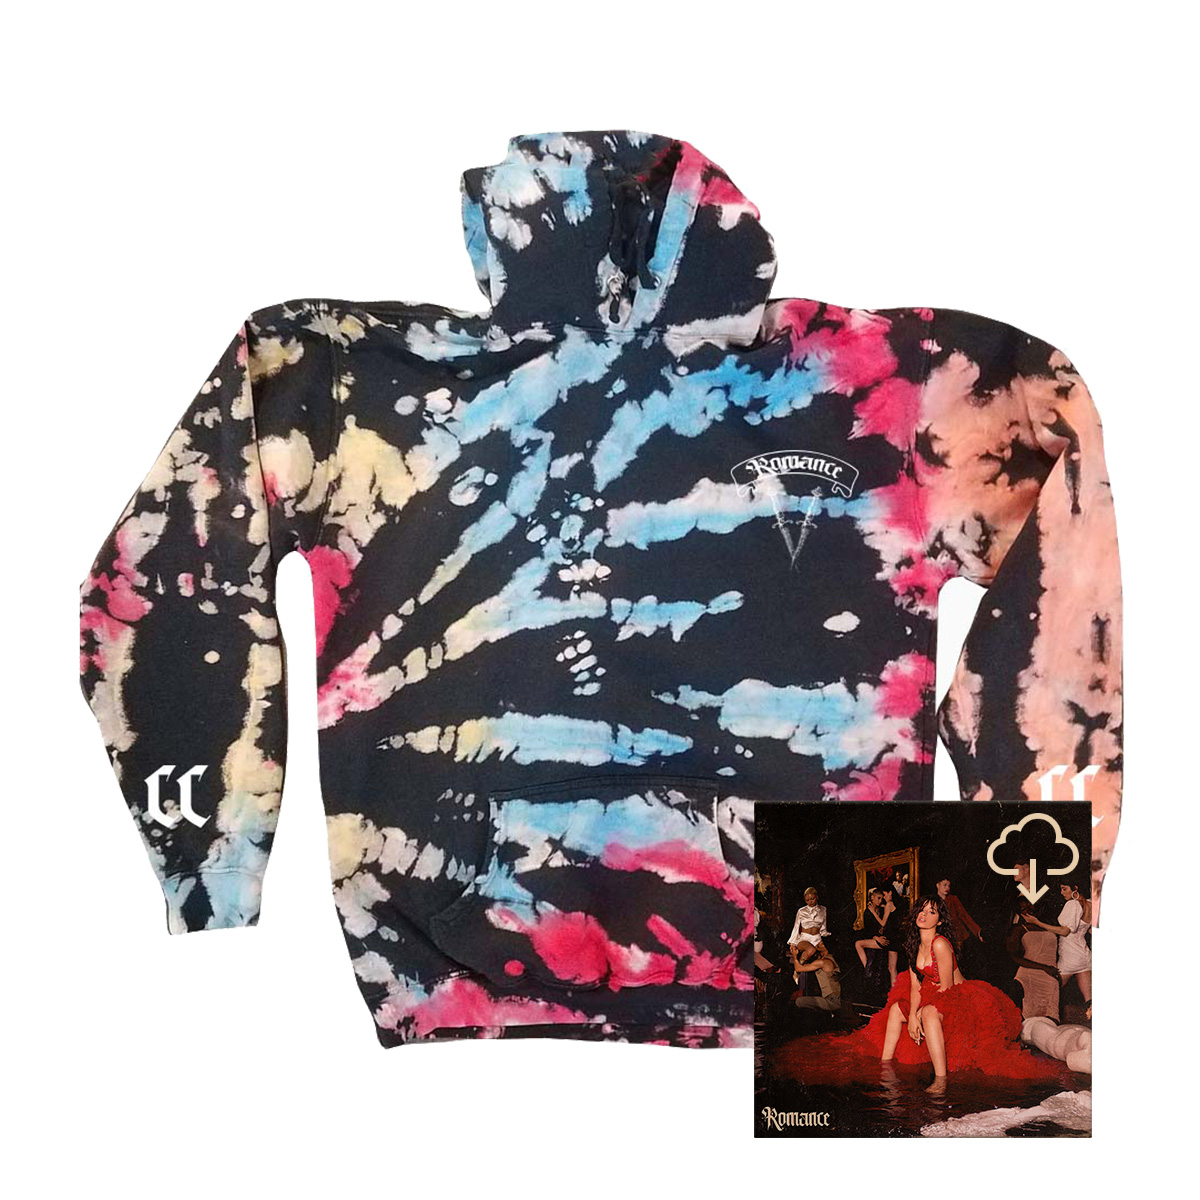 Cupid TieDye Hoodie + Digital Album Download